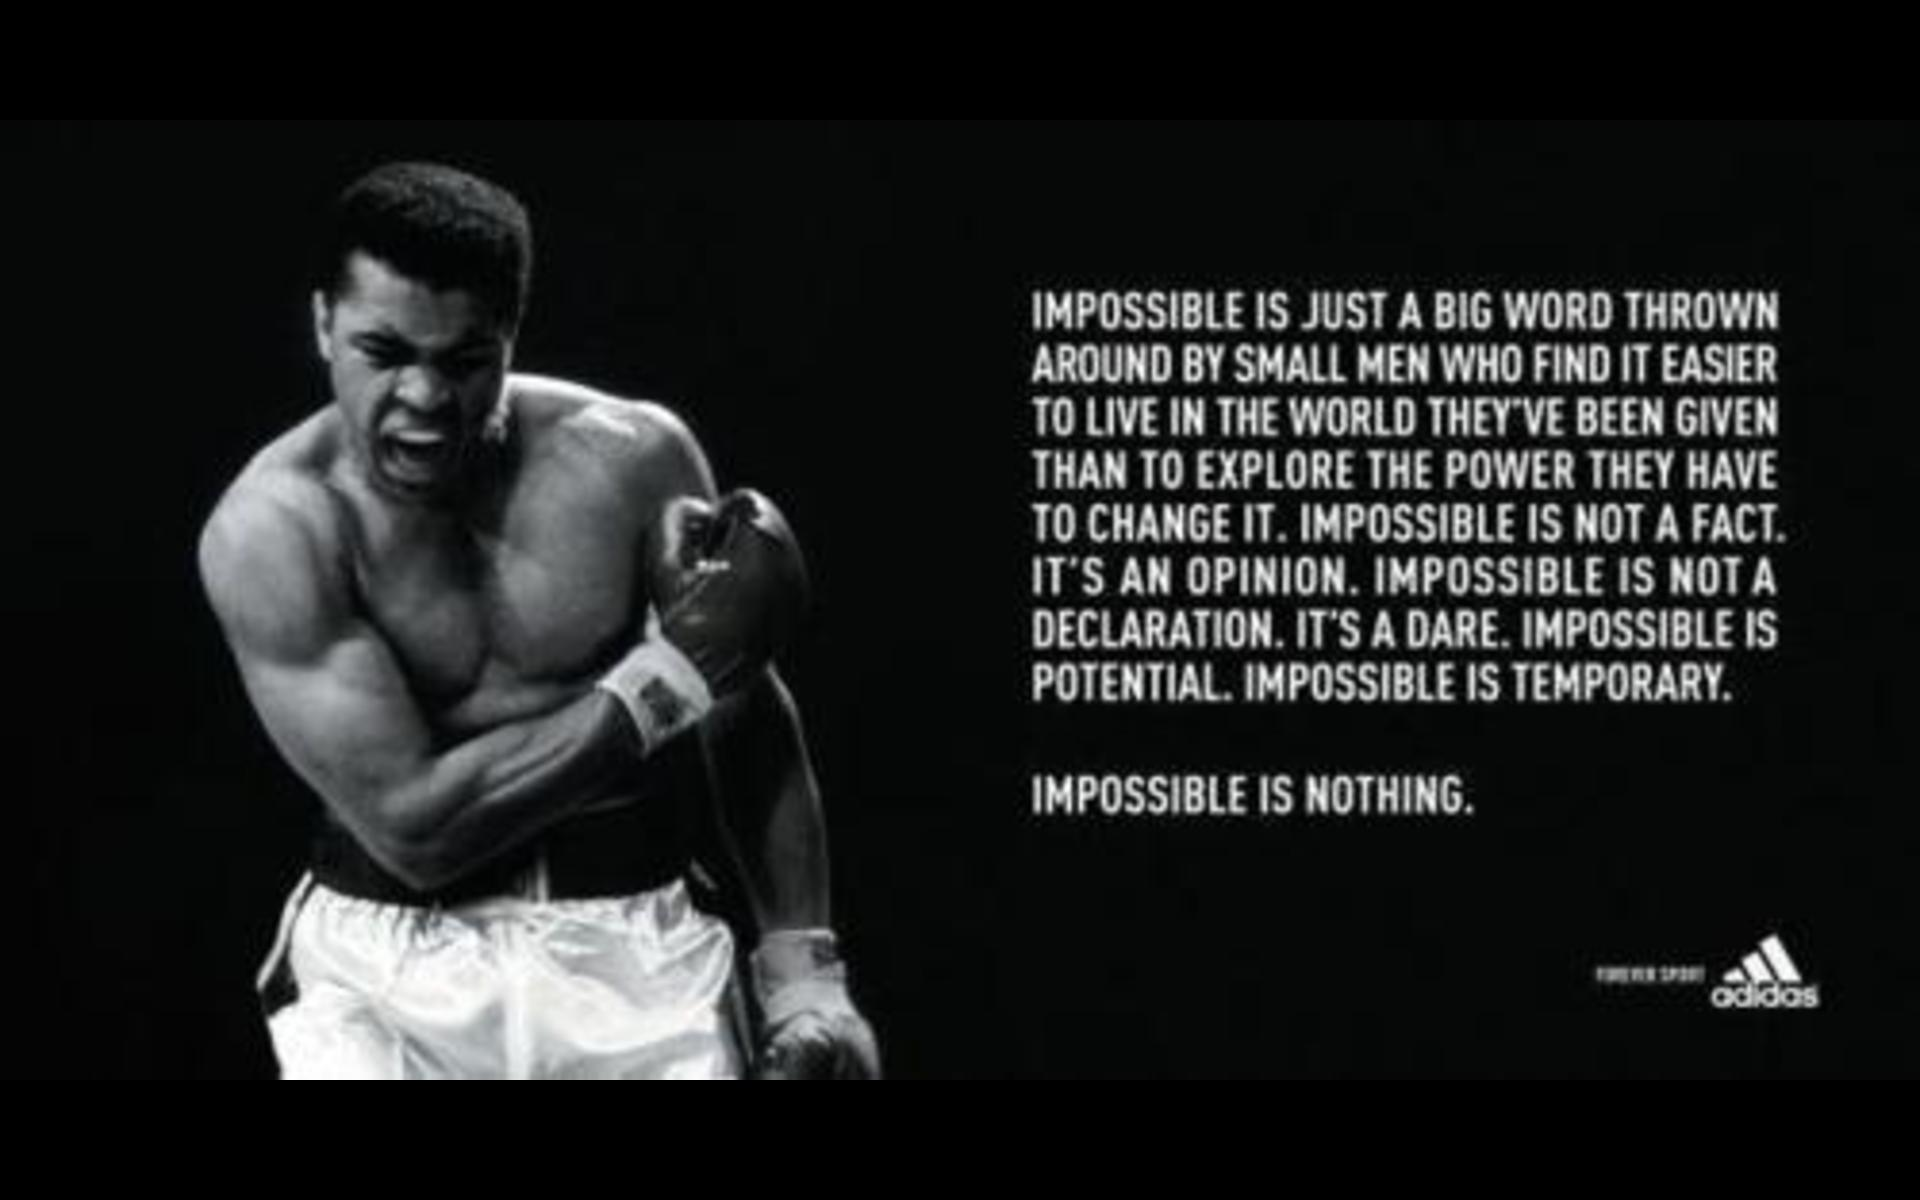 Muhammad ali quotes wallpapers hd wallpaper muhammad ali quotes images voltagebd Images